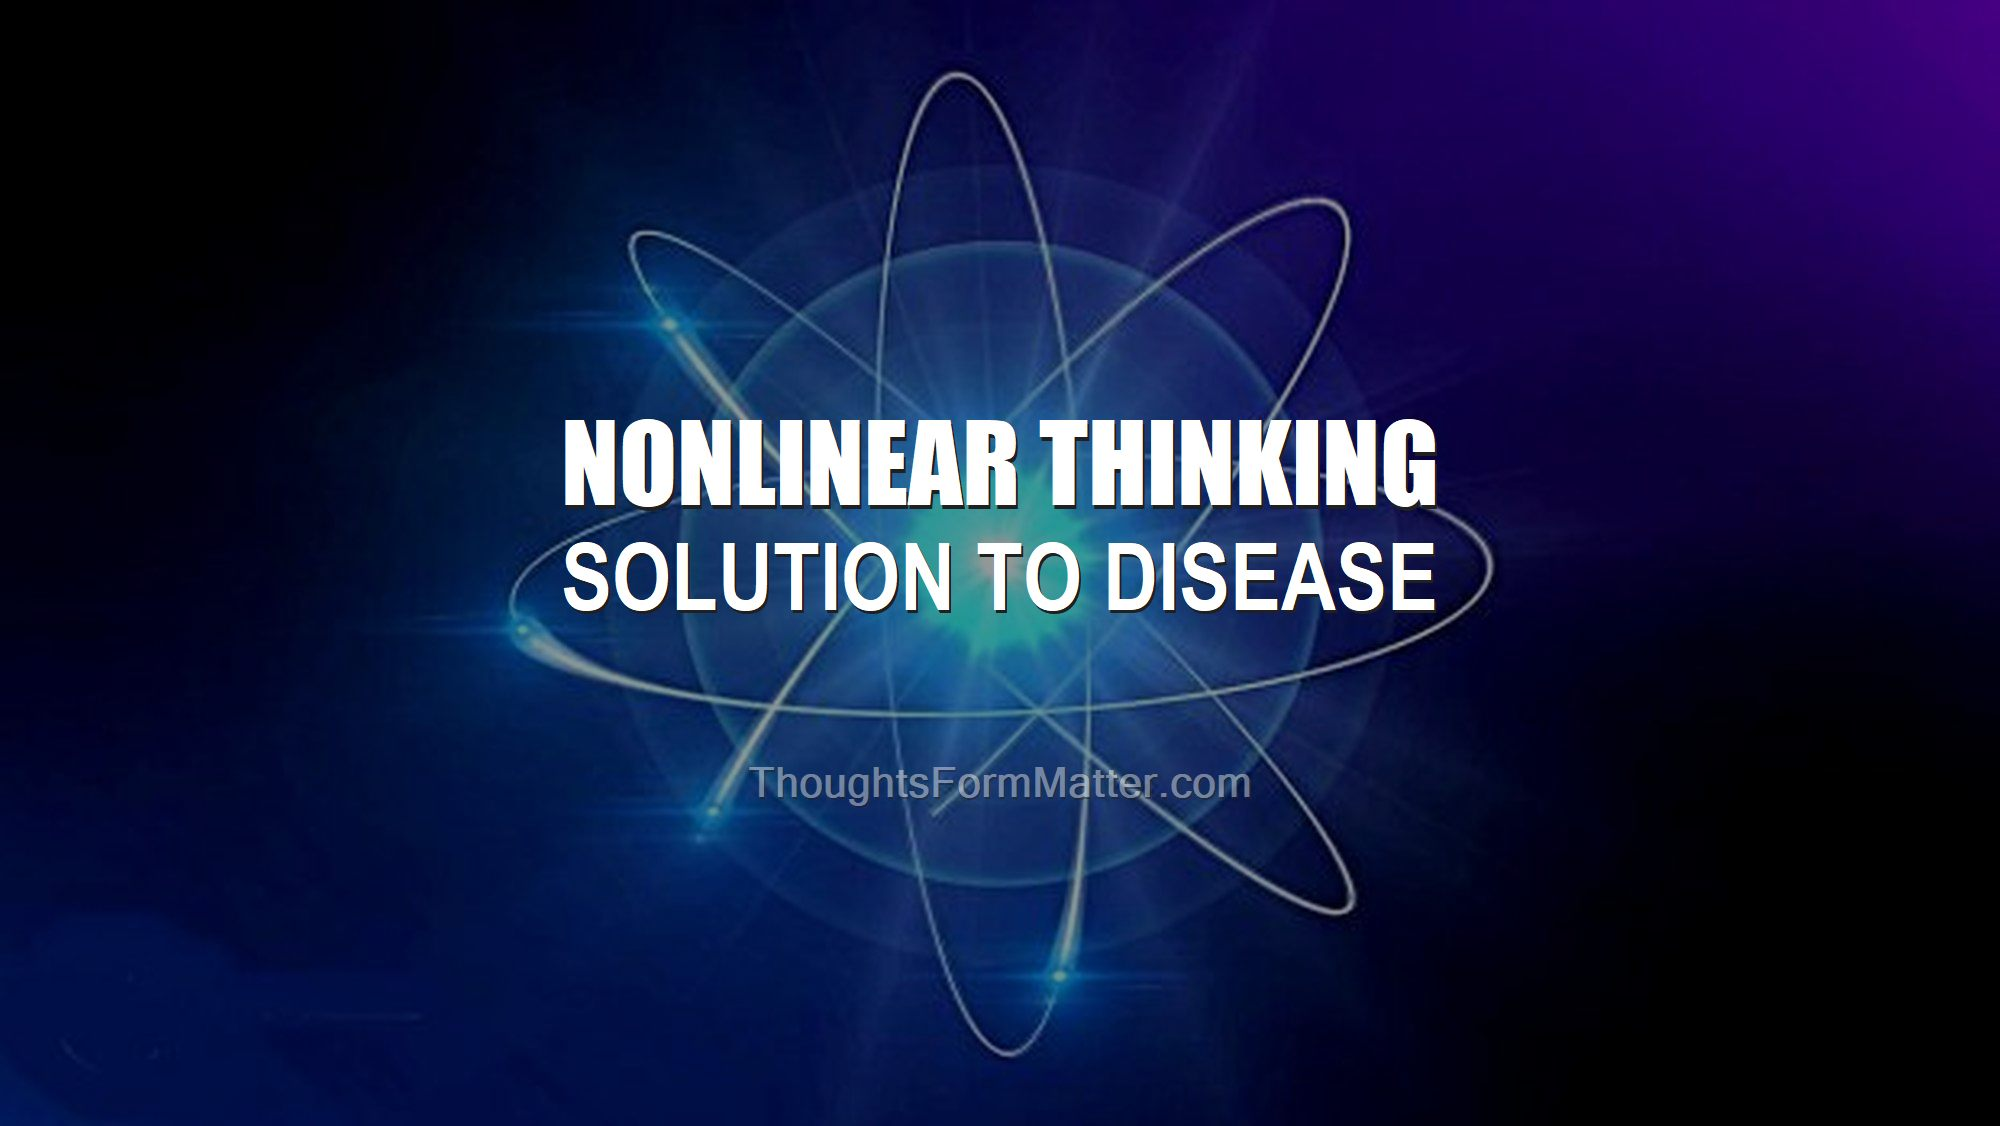 nonlinear-thinking-paradigm-solution-to-western-medicine-disease-illness-atom-illustration-depicts